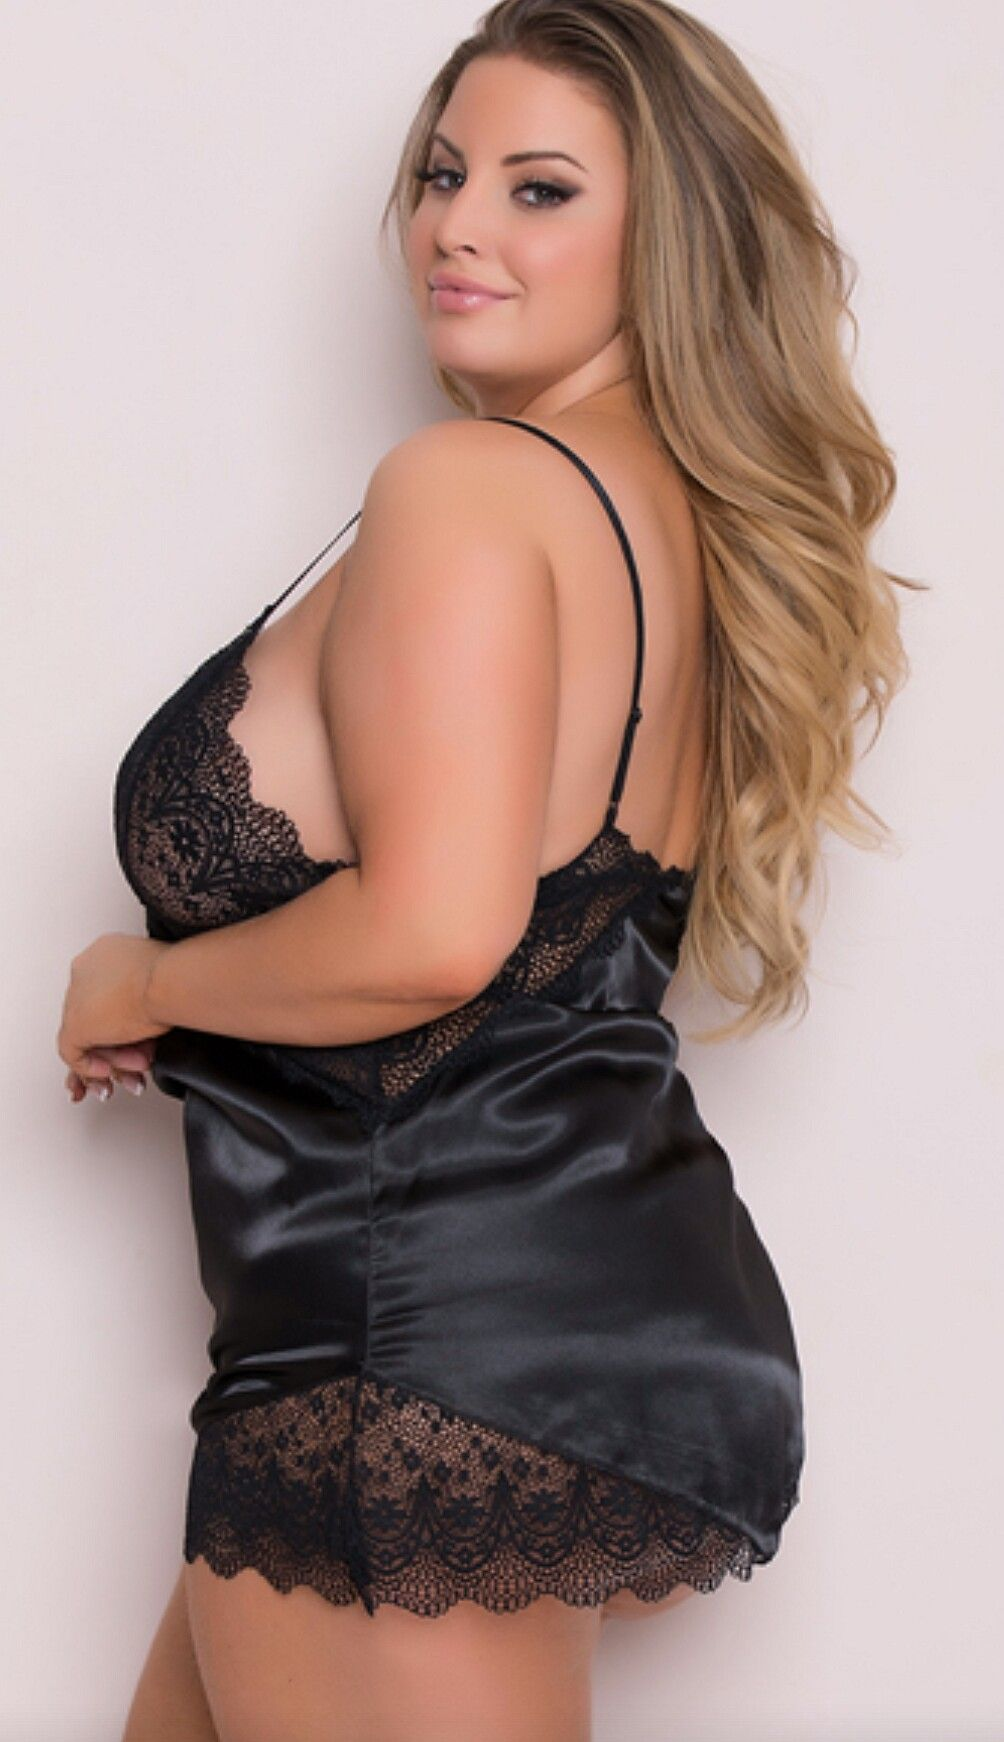 32ab41070ee Ashley Alexiss Side Pose in Lingerie Slip Sexy Breasts Tease and Upper  Thigh-Legs!